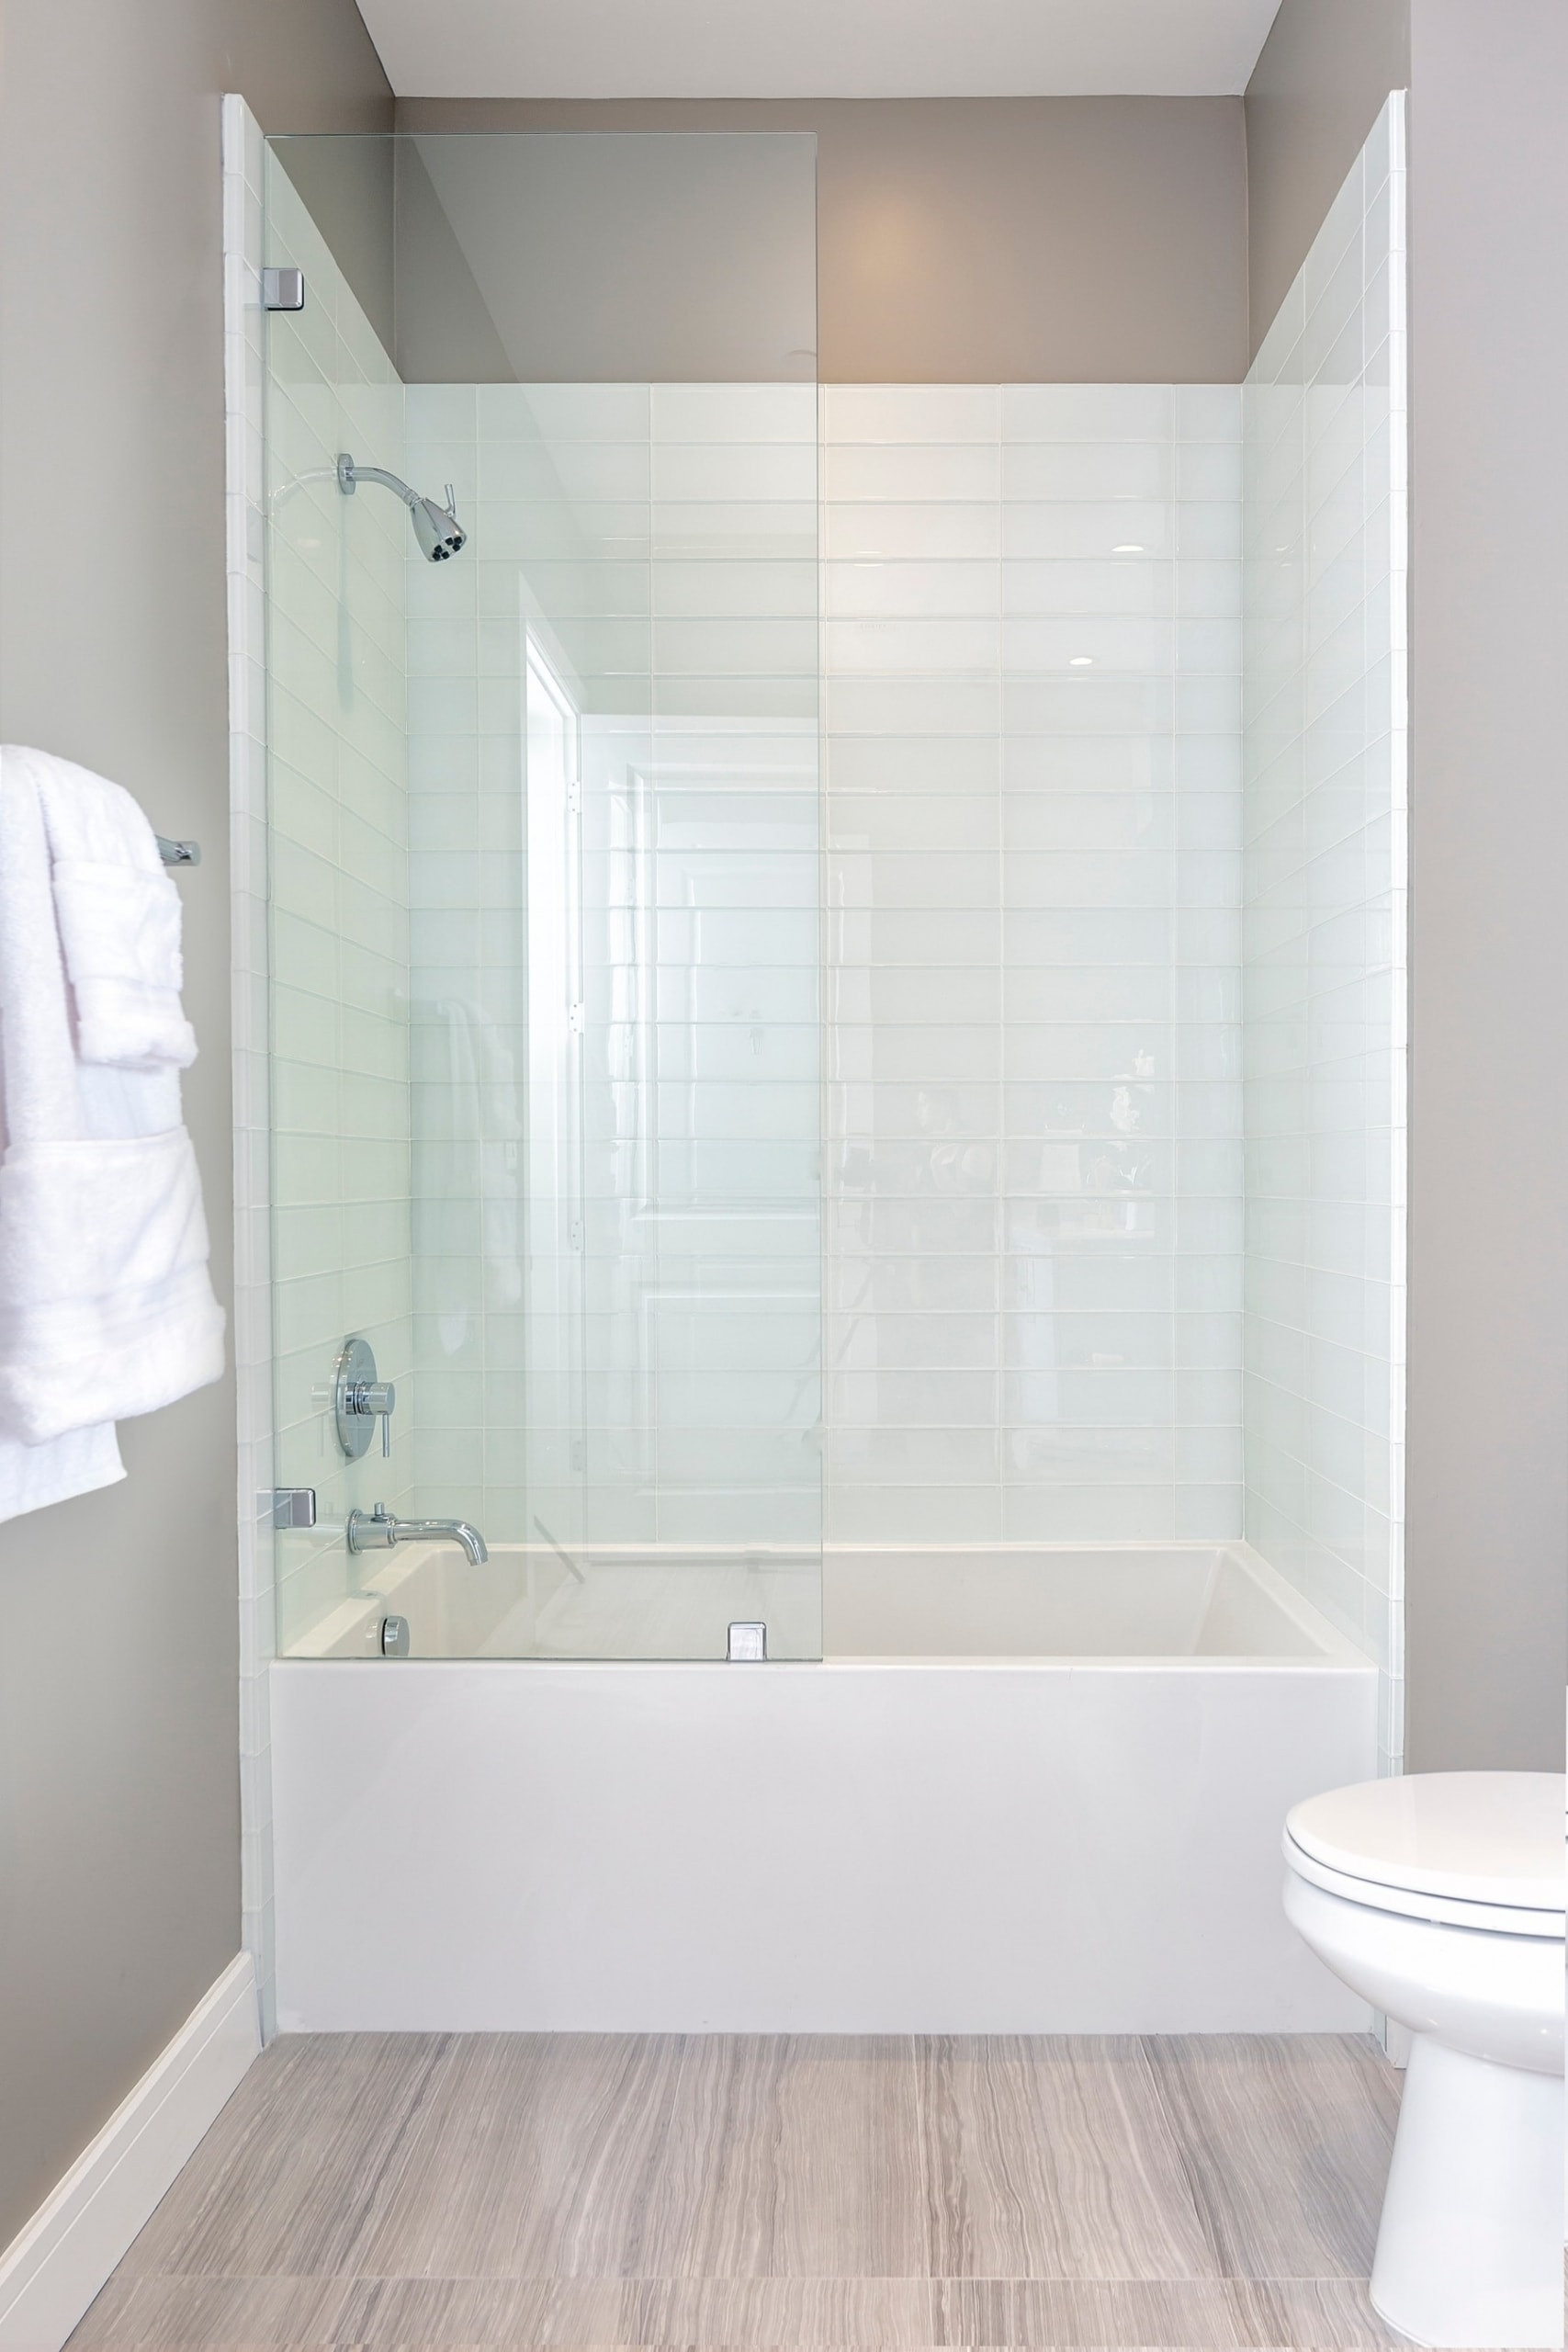 bath tub and shower combo in the model unit of arabella luxury condos in houston